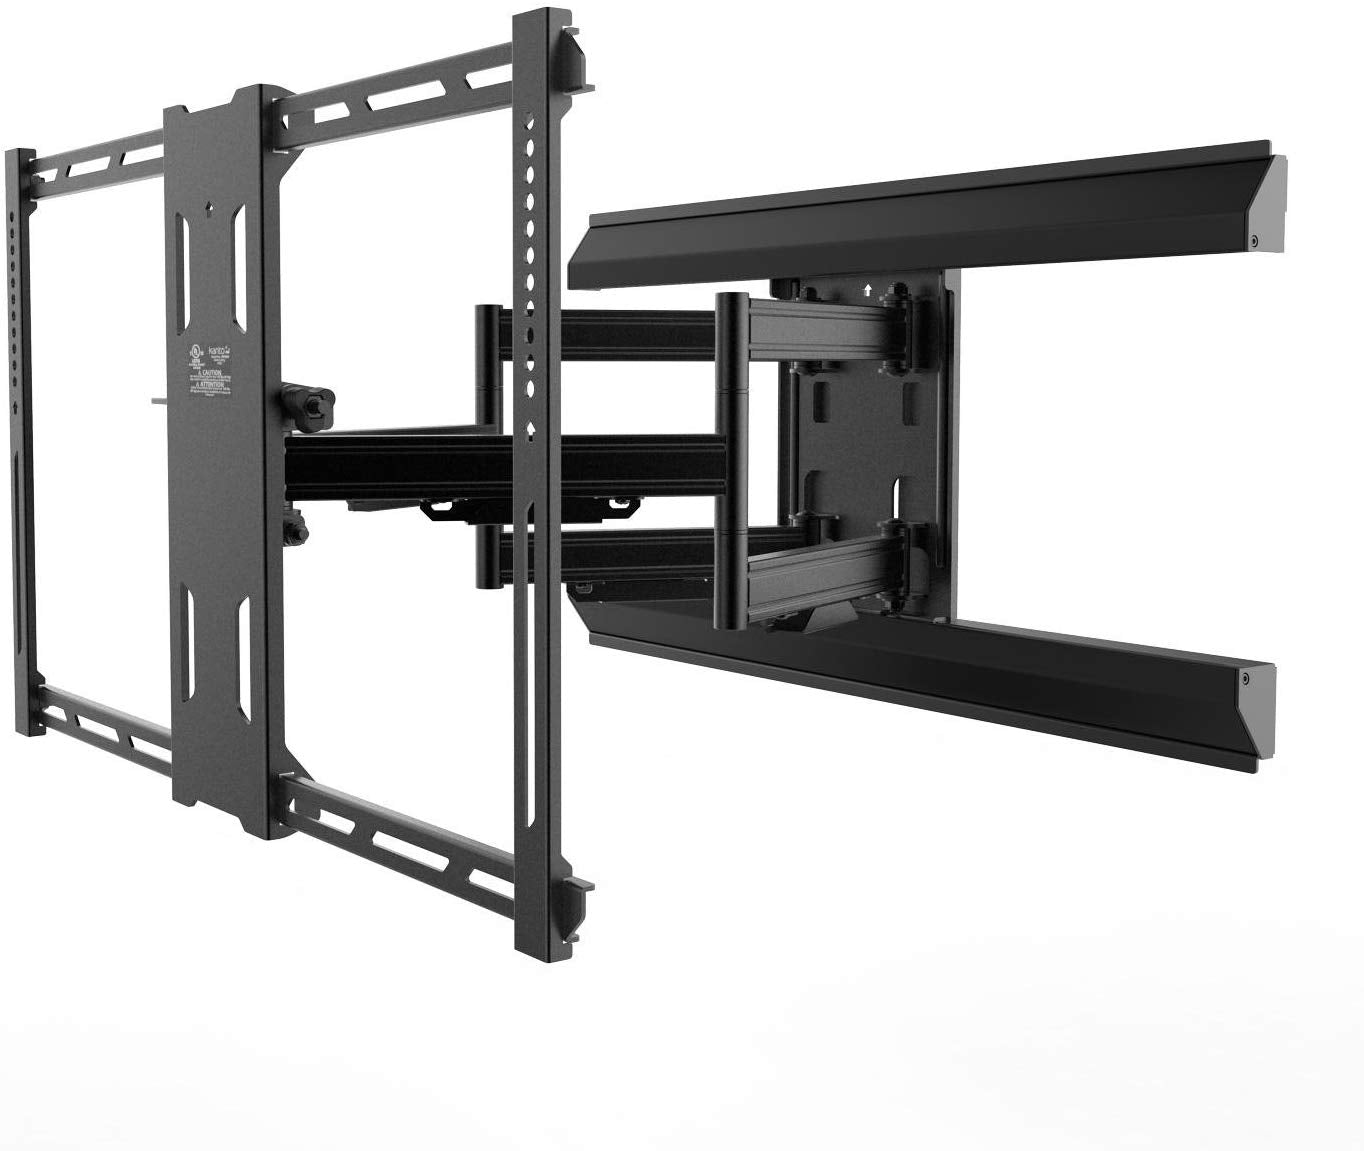 "Kanto Full Motion PMX680 Pro Series Mount for 39"" to 80"" Flat Panel TVs, Black…"